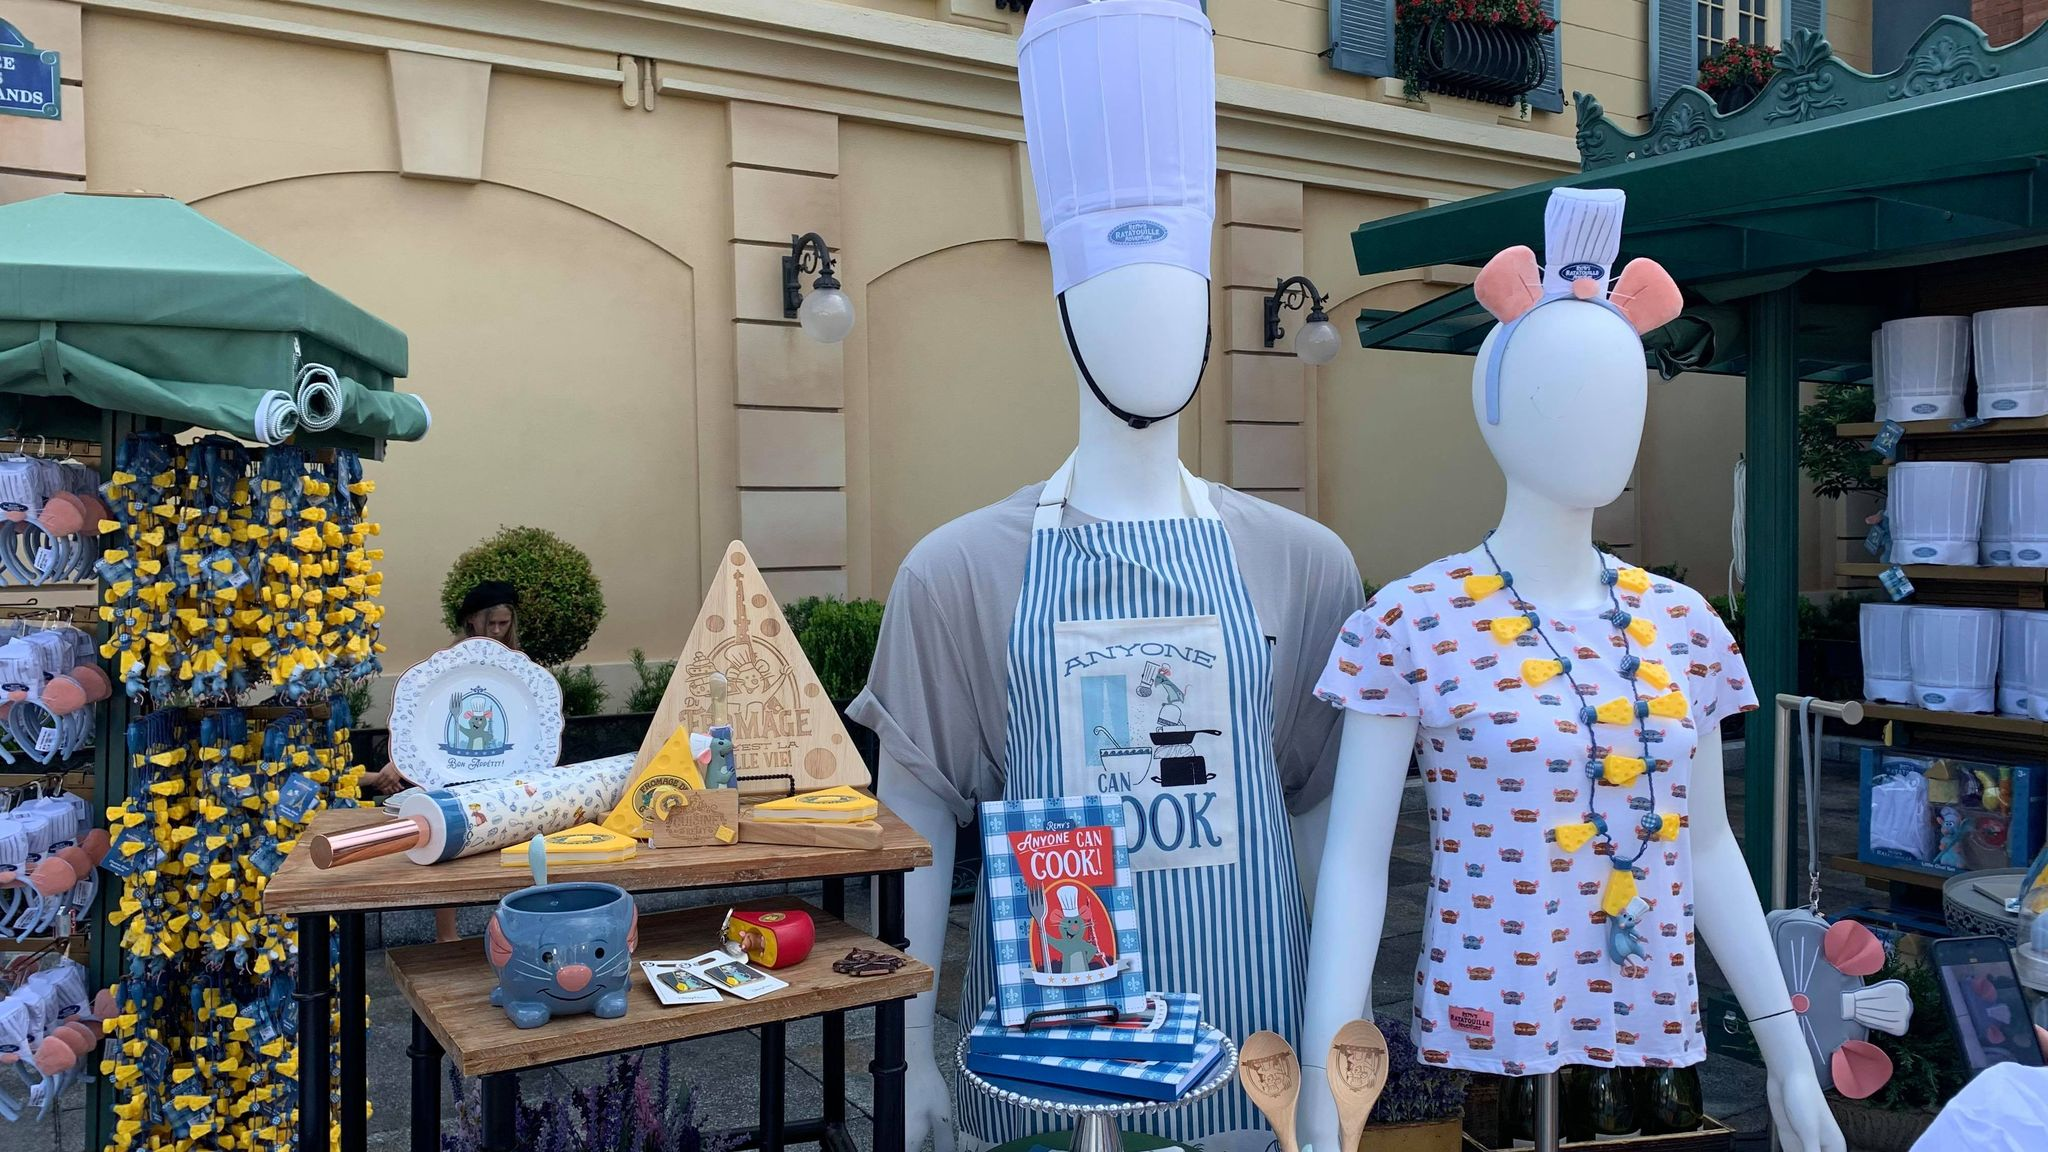 First look at the new Remy's Ratatouille Adventure line of merch coming soon! 12